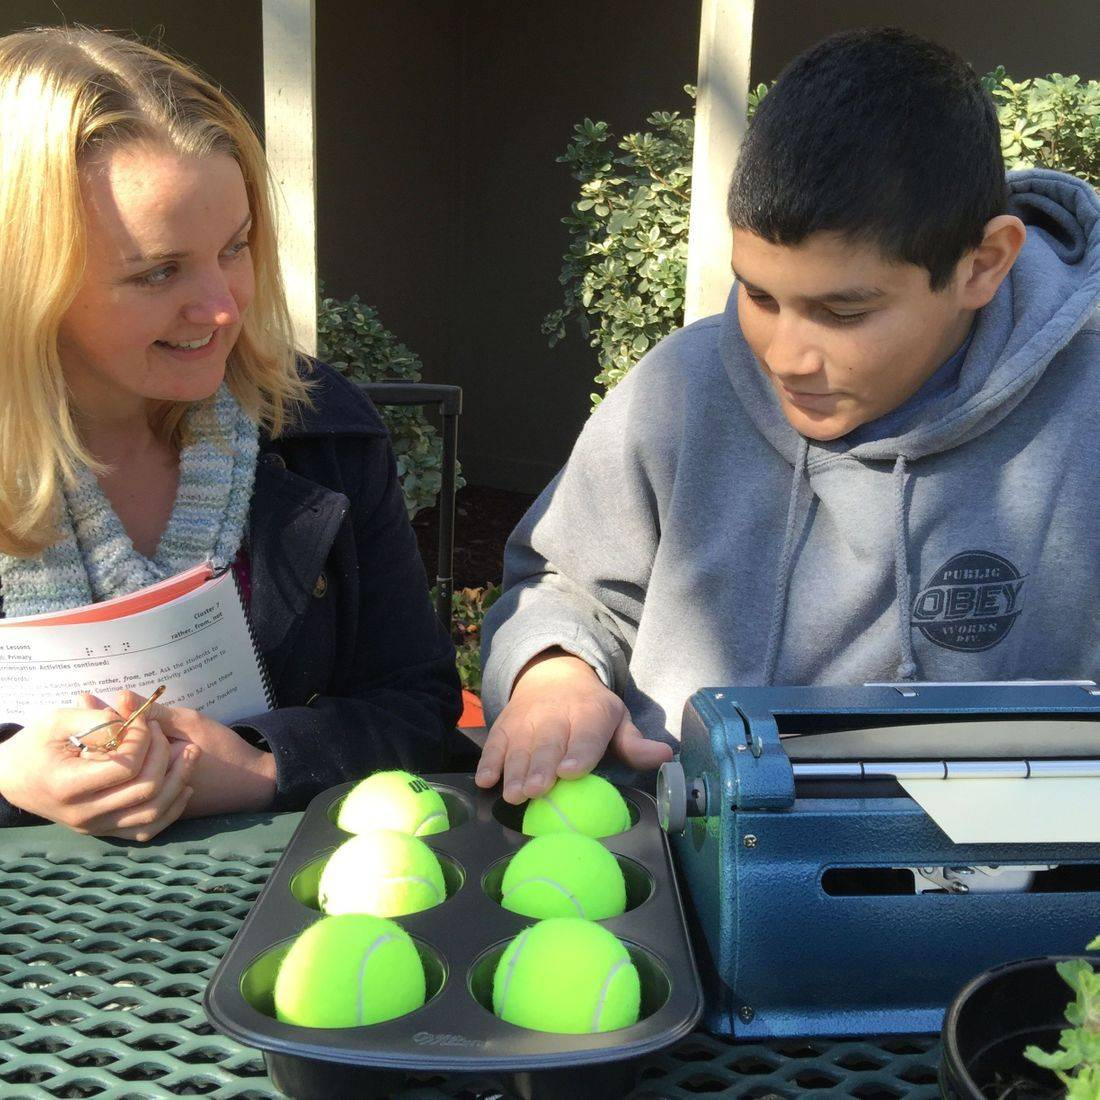 A blind young man is learning braille with his TVI. He is using a braille writer and tennis ball braille cell.